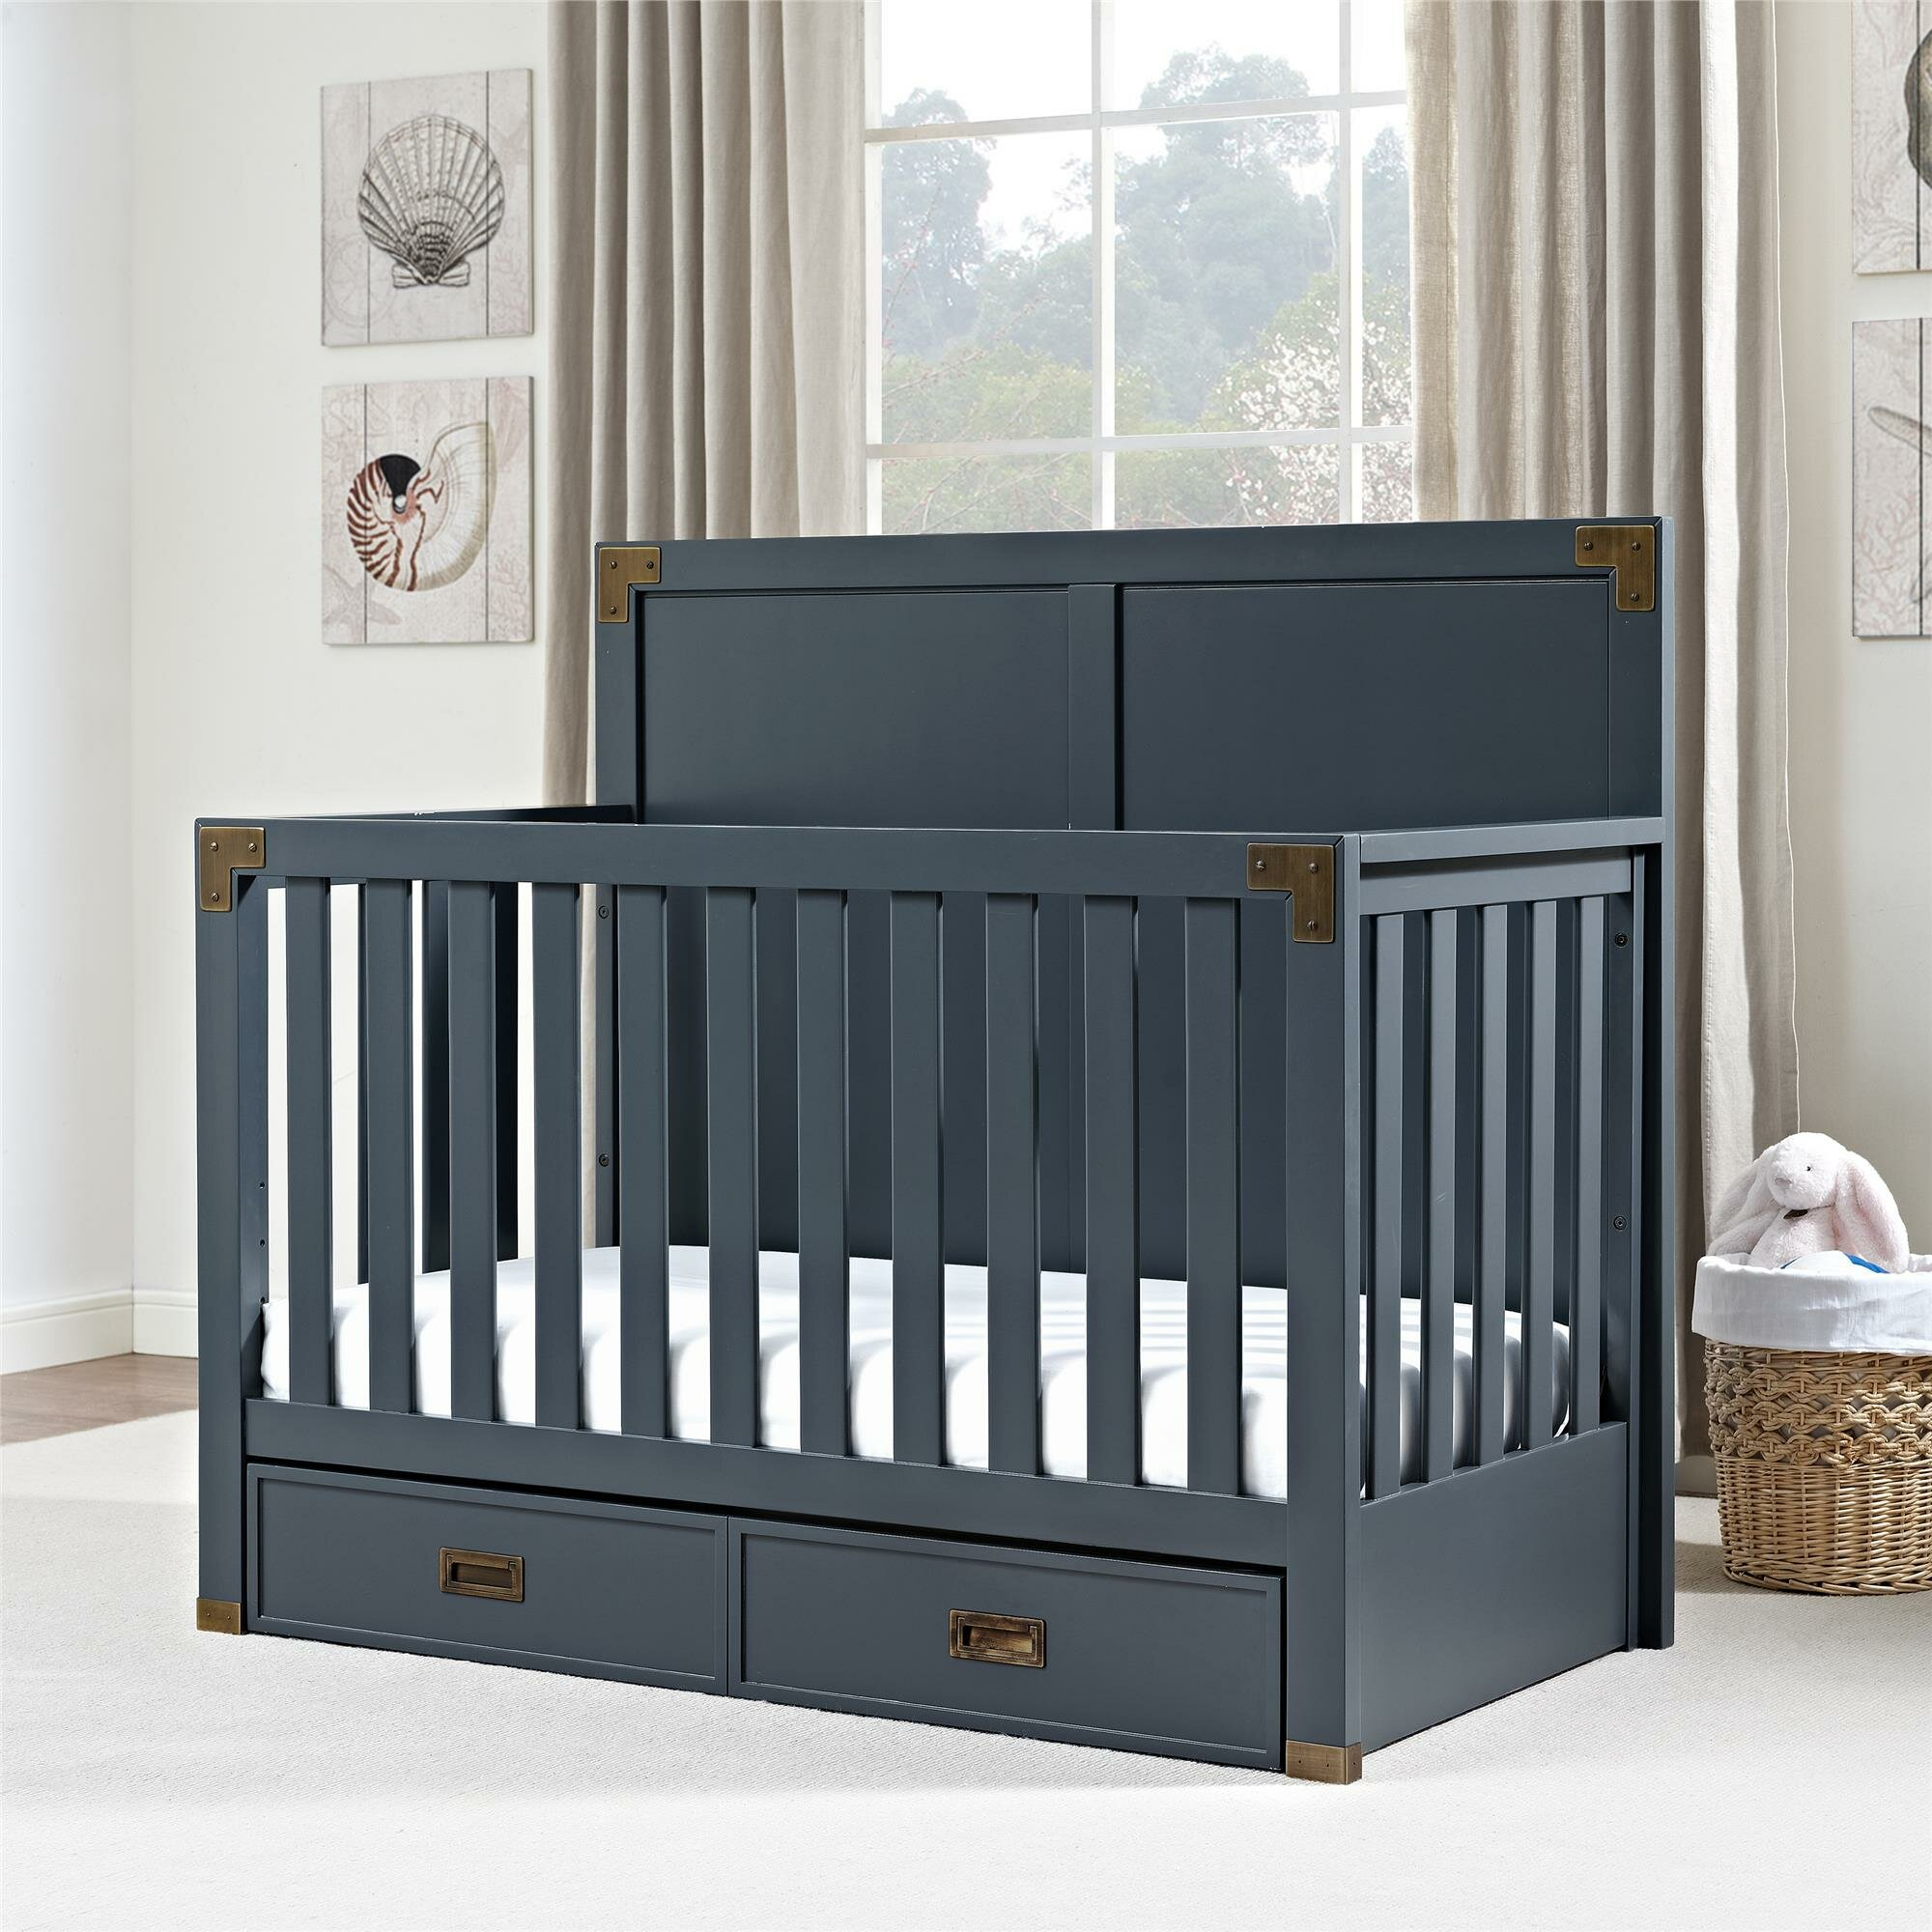 Viv + Rae Agostino 5 In 1 Convertible Crib U0026 Reviews | Wayfair